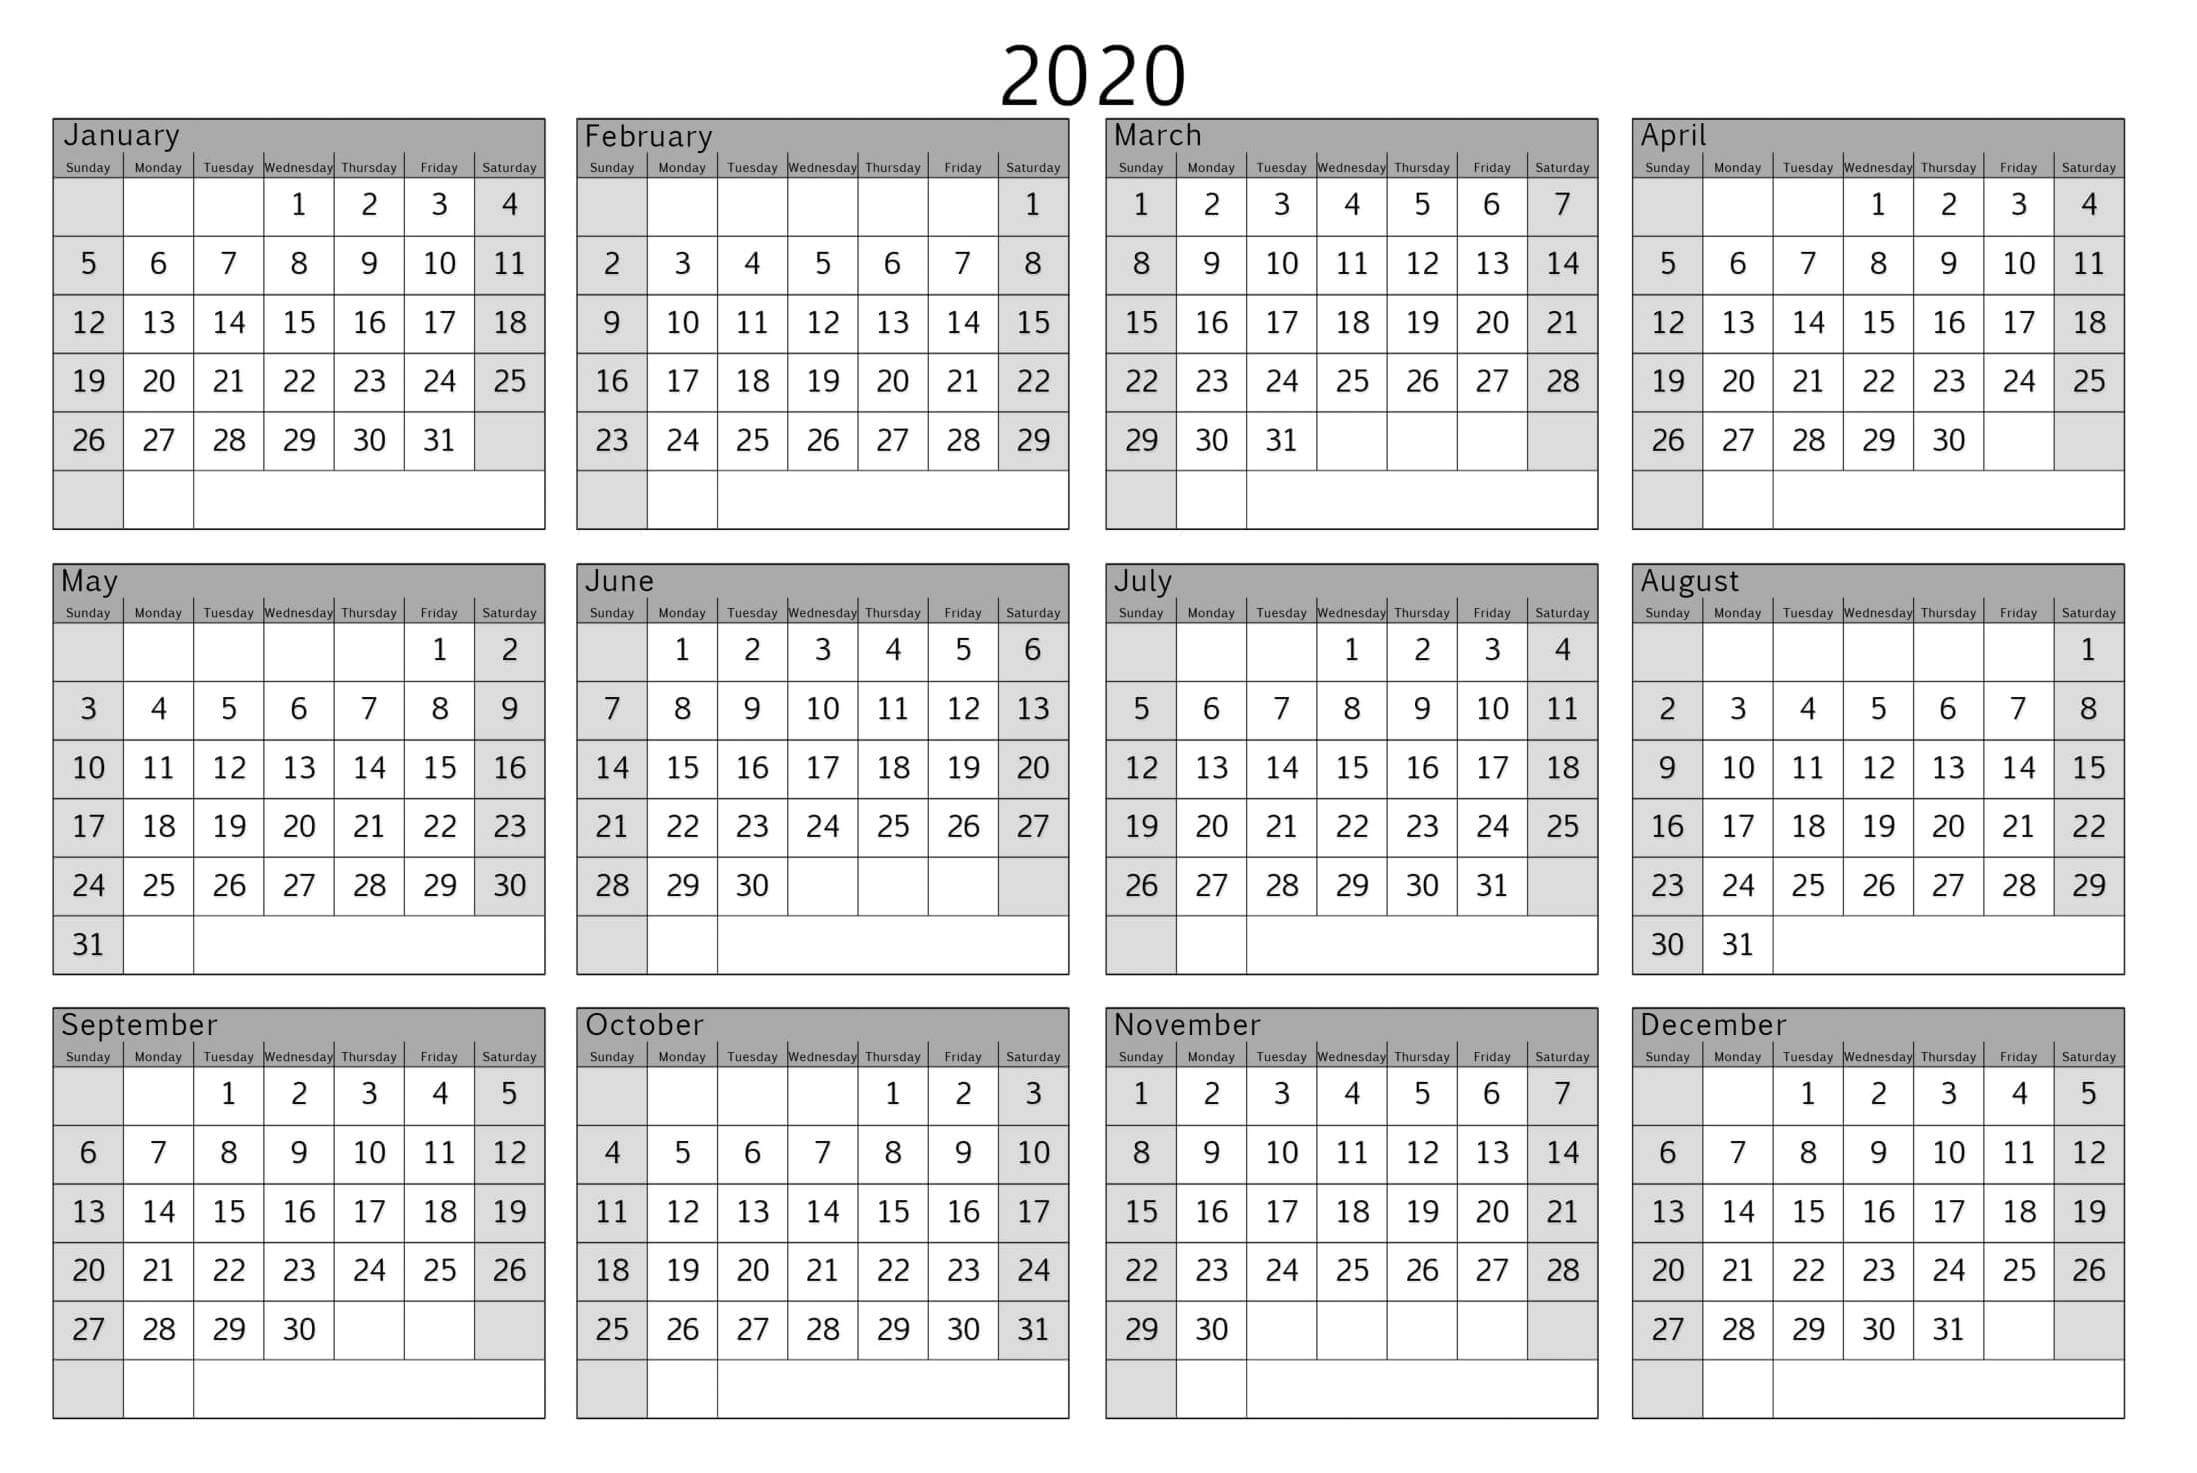 Colorful Yearly Calendar Template With Notes 2020 Word - Set in 2020 Free Printable Calendars Without Downloading At A Glance